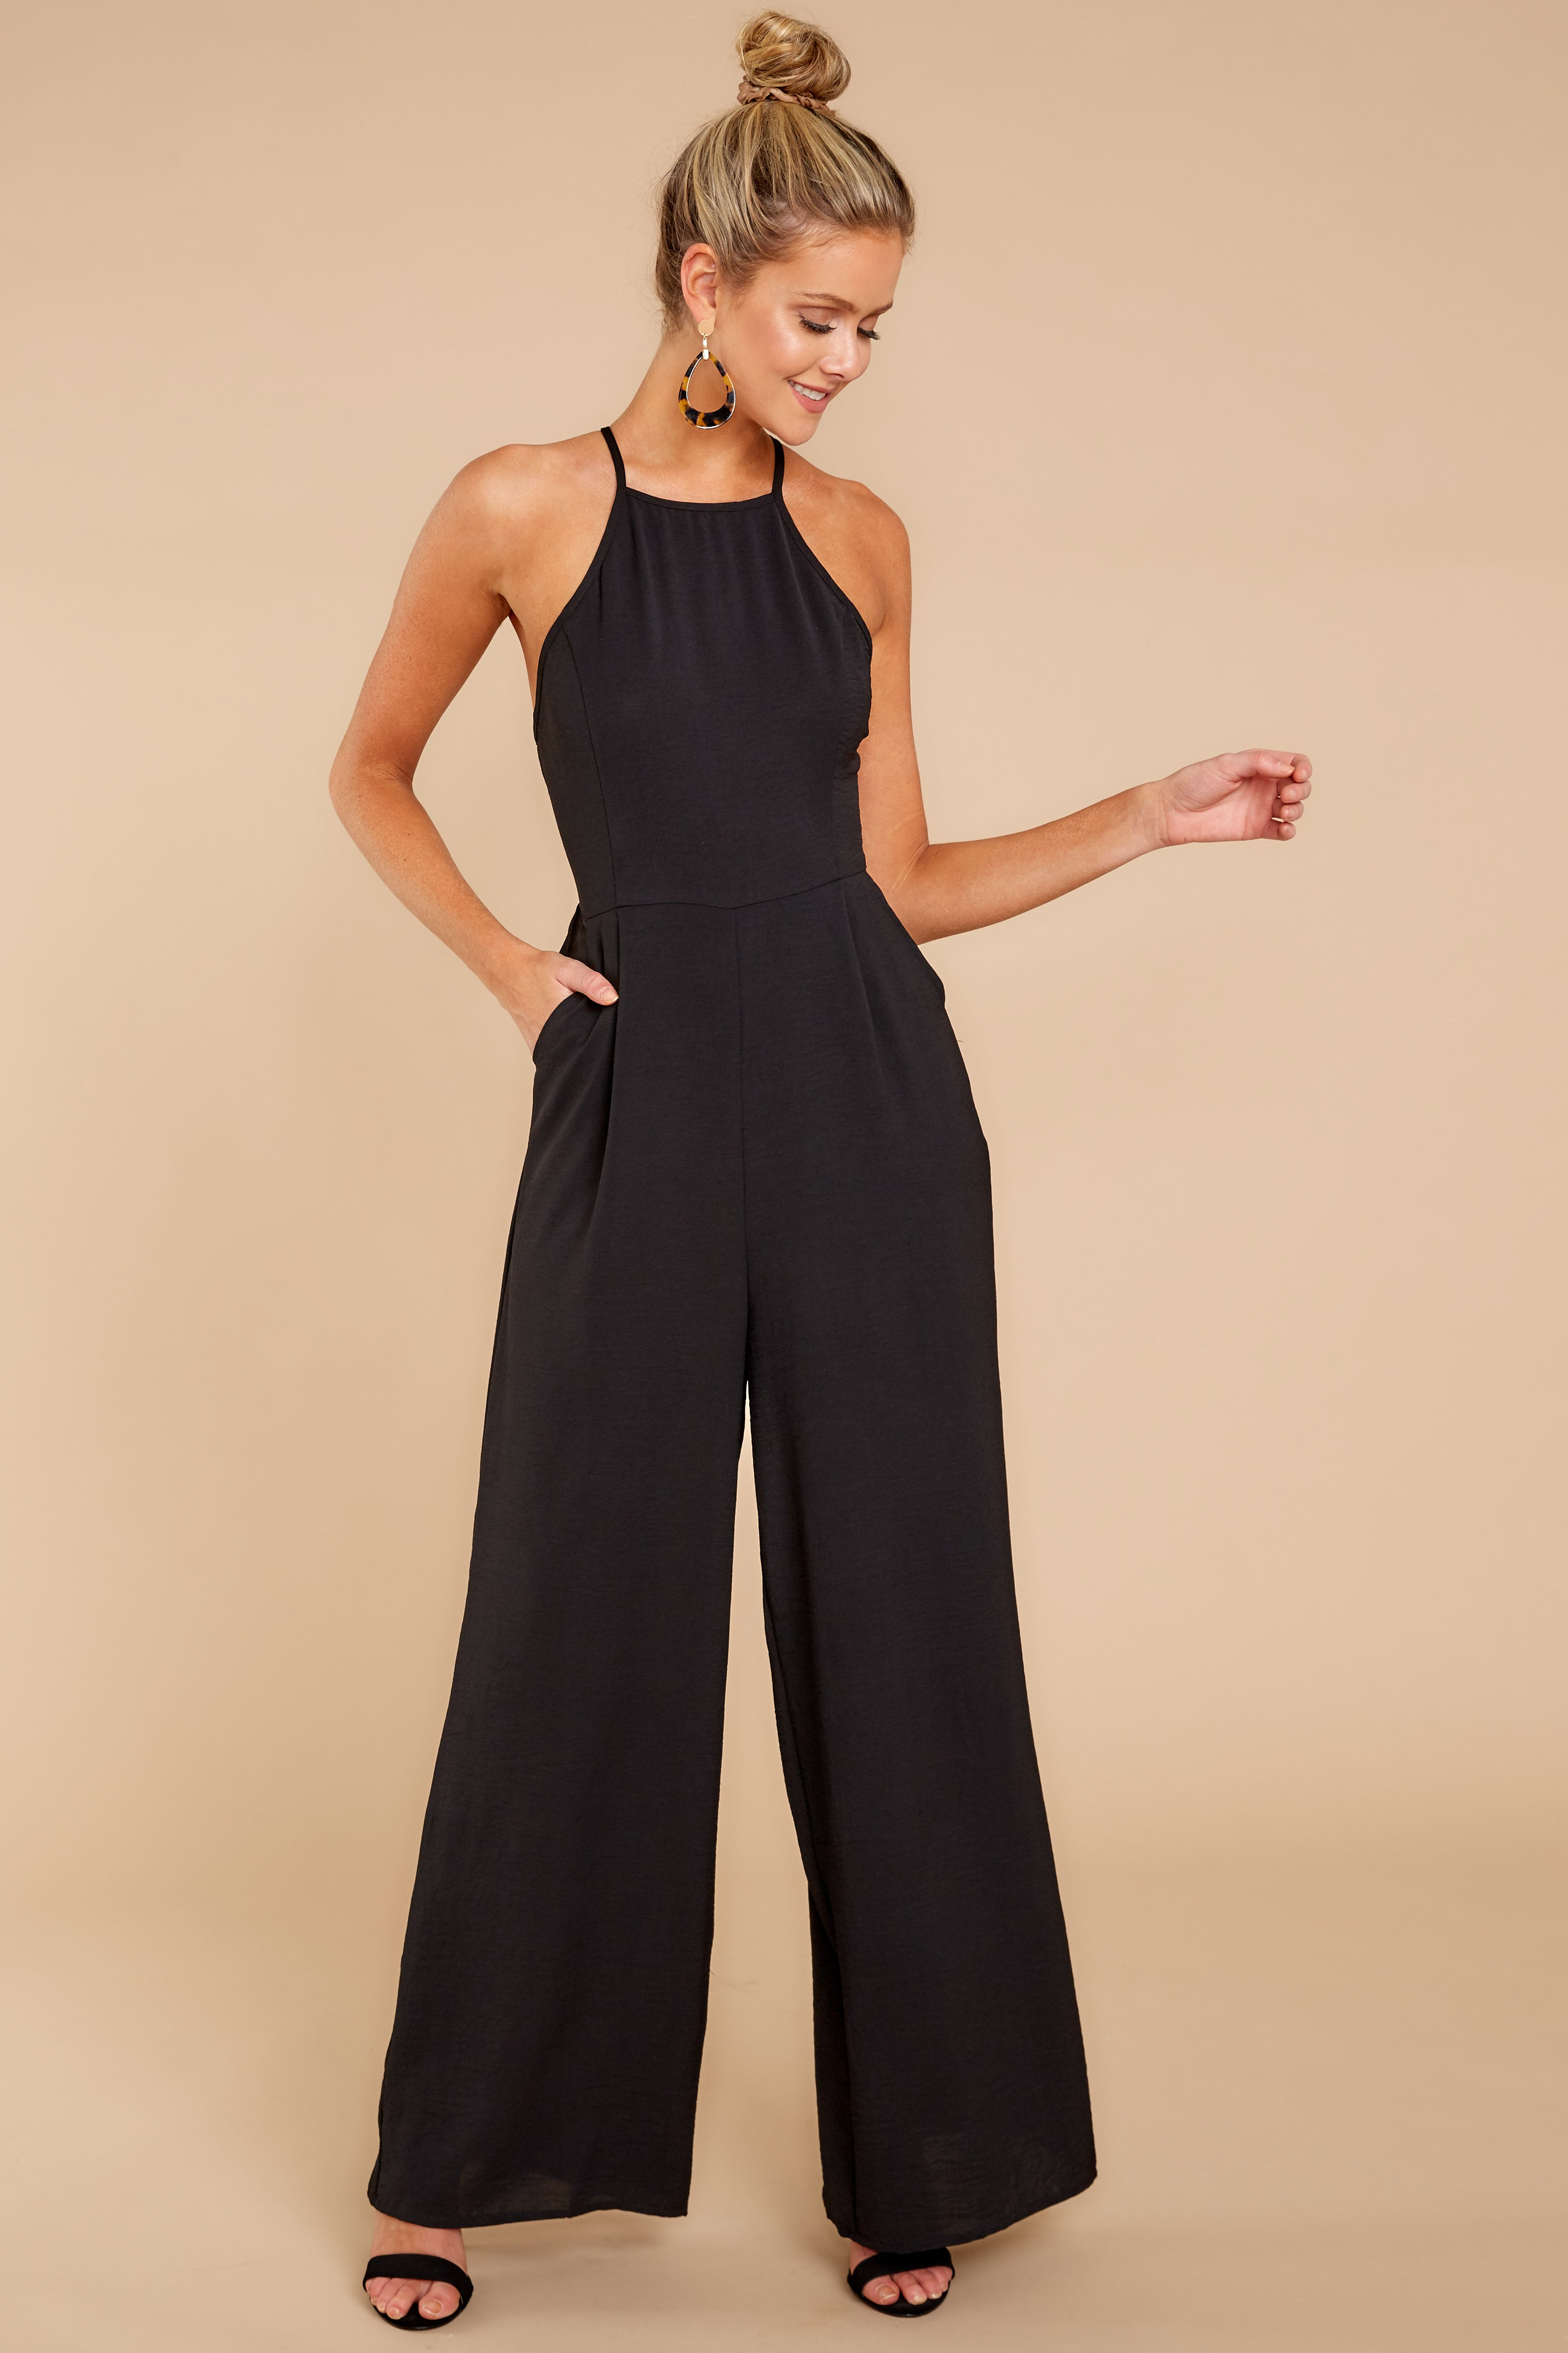 4 No More Games Black Jumpsuit at reddressboutique.com